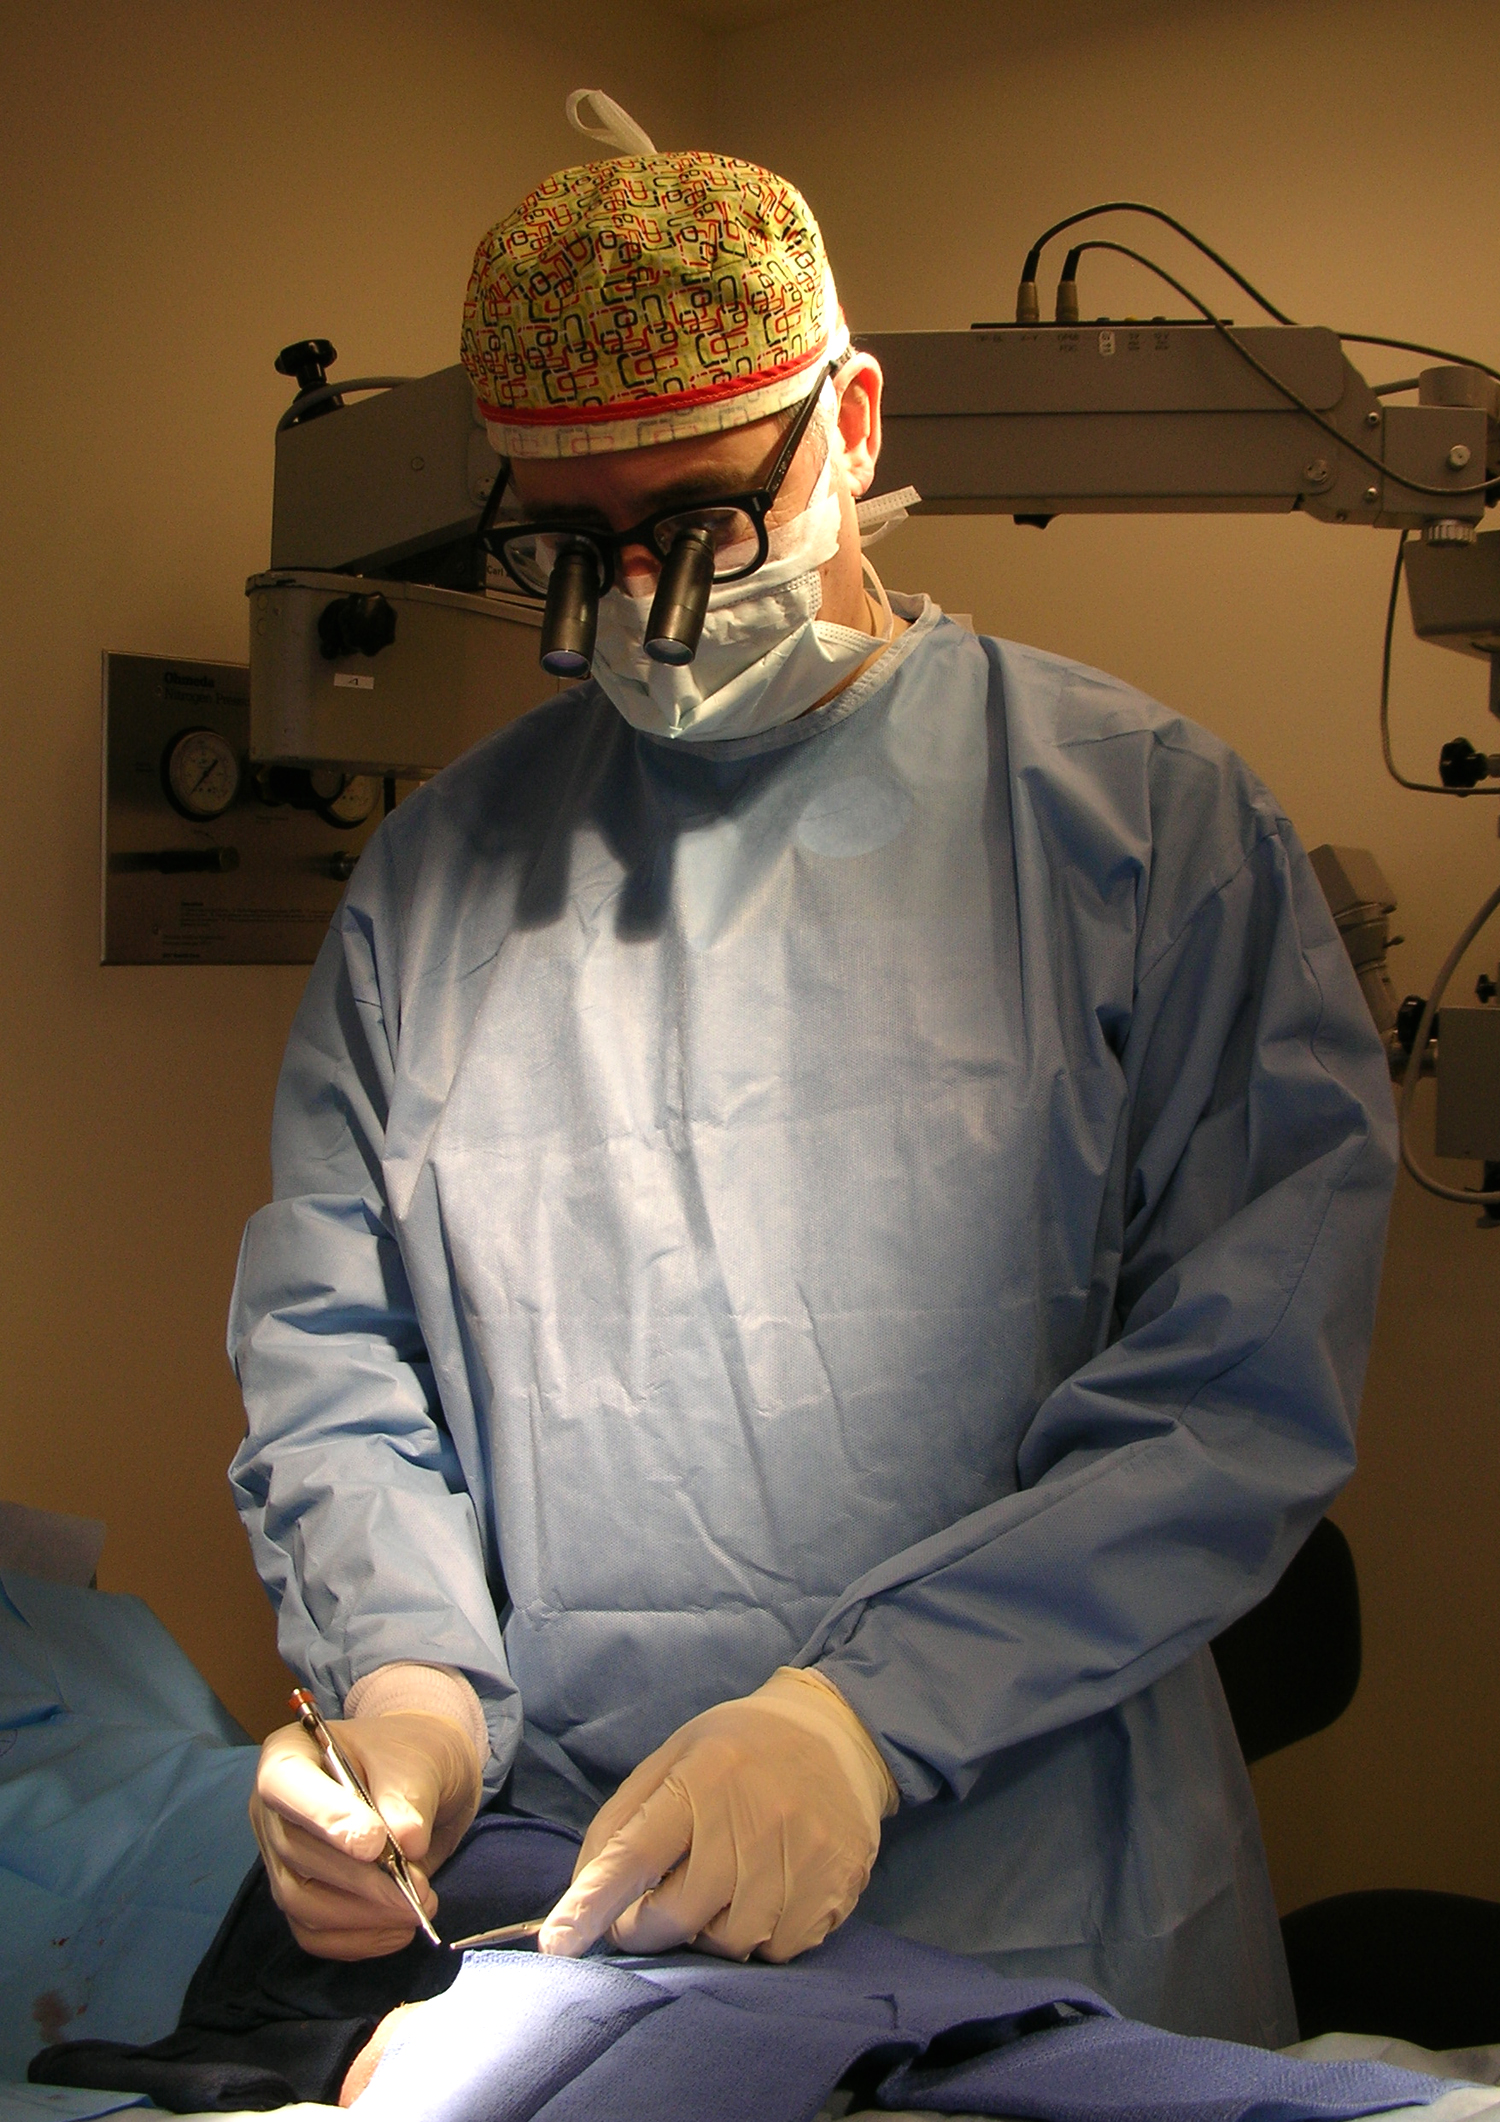 Dr. Paul Turek Performing Surgery